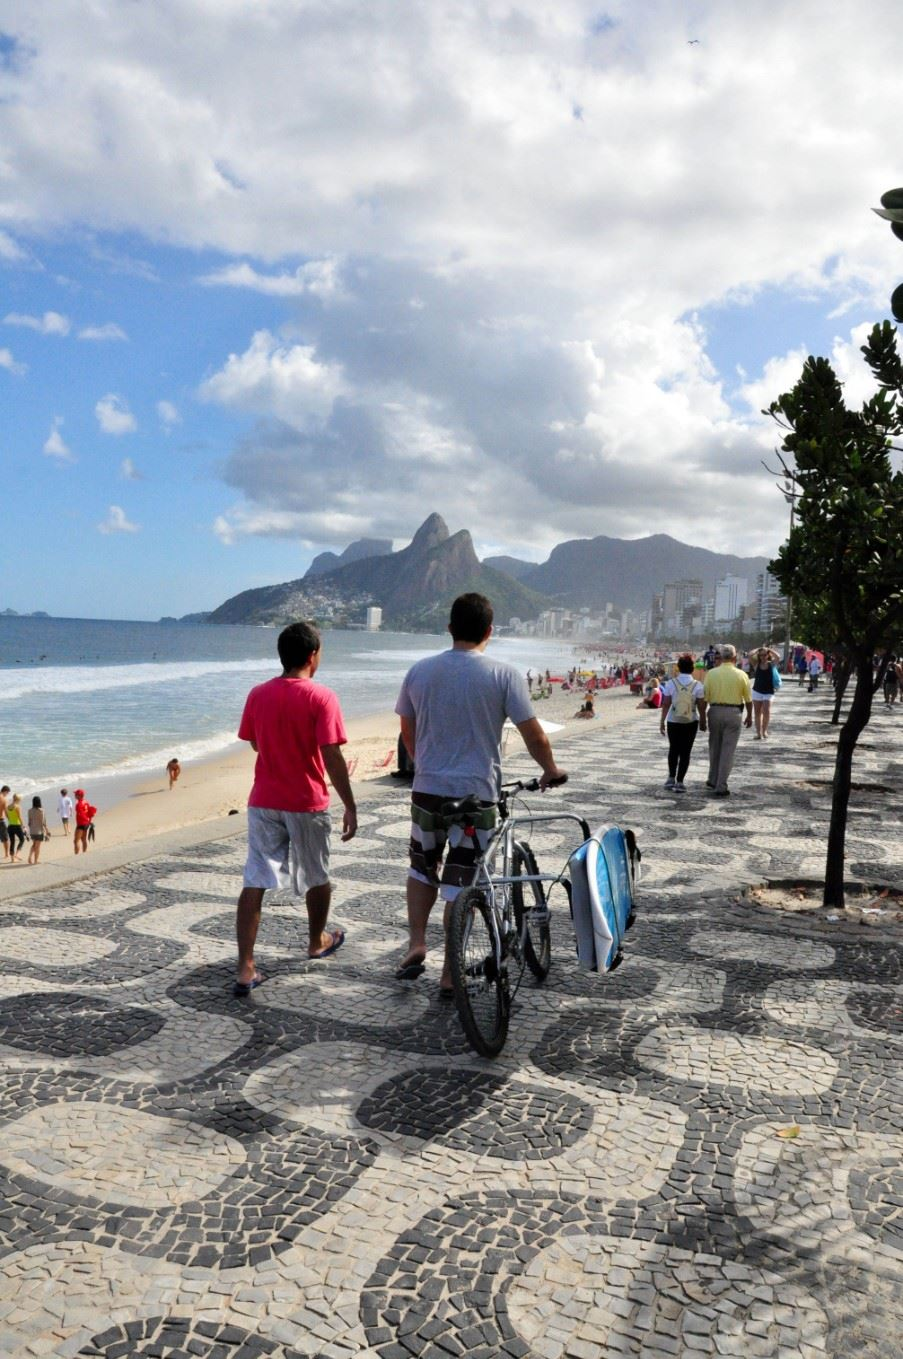 Walking down the promenade of Copacabana beach